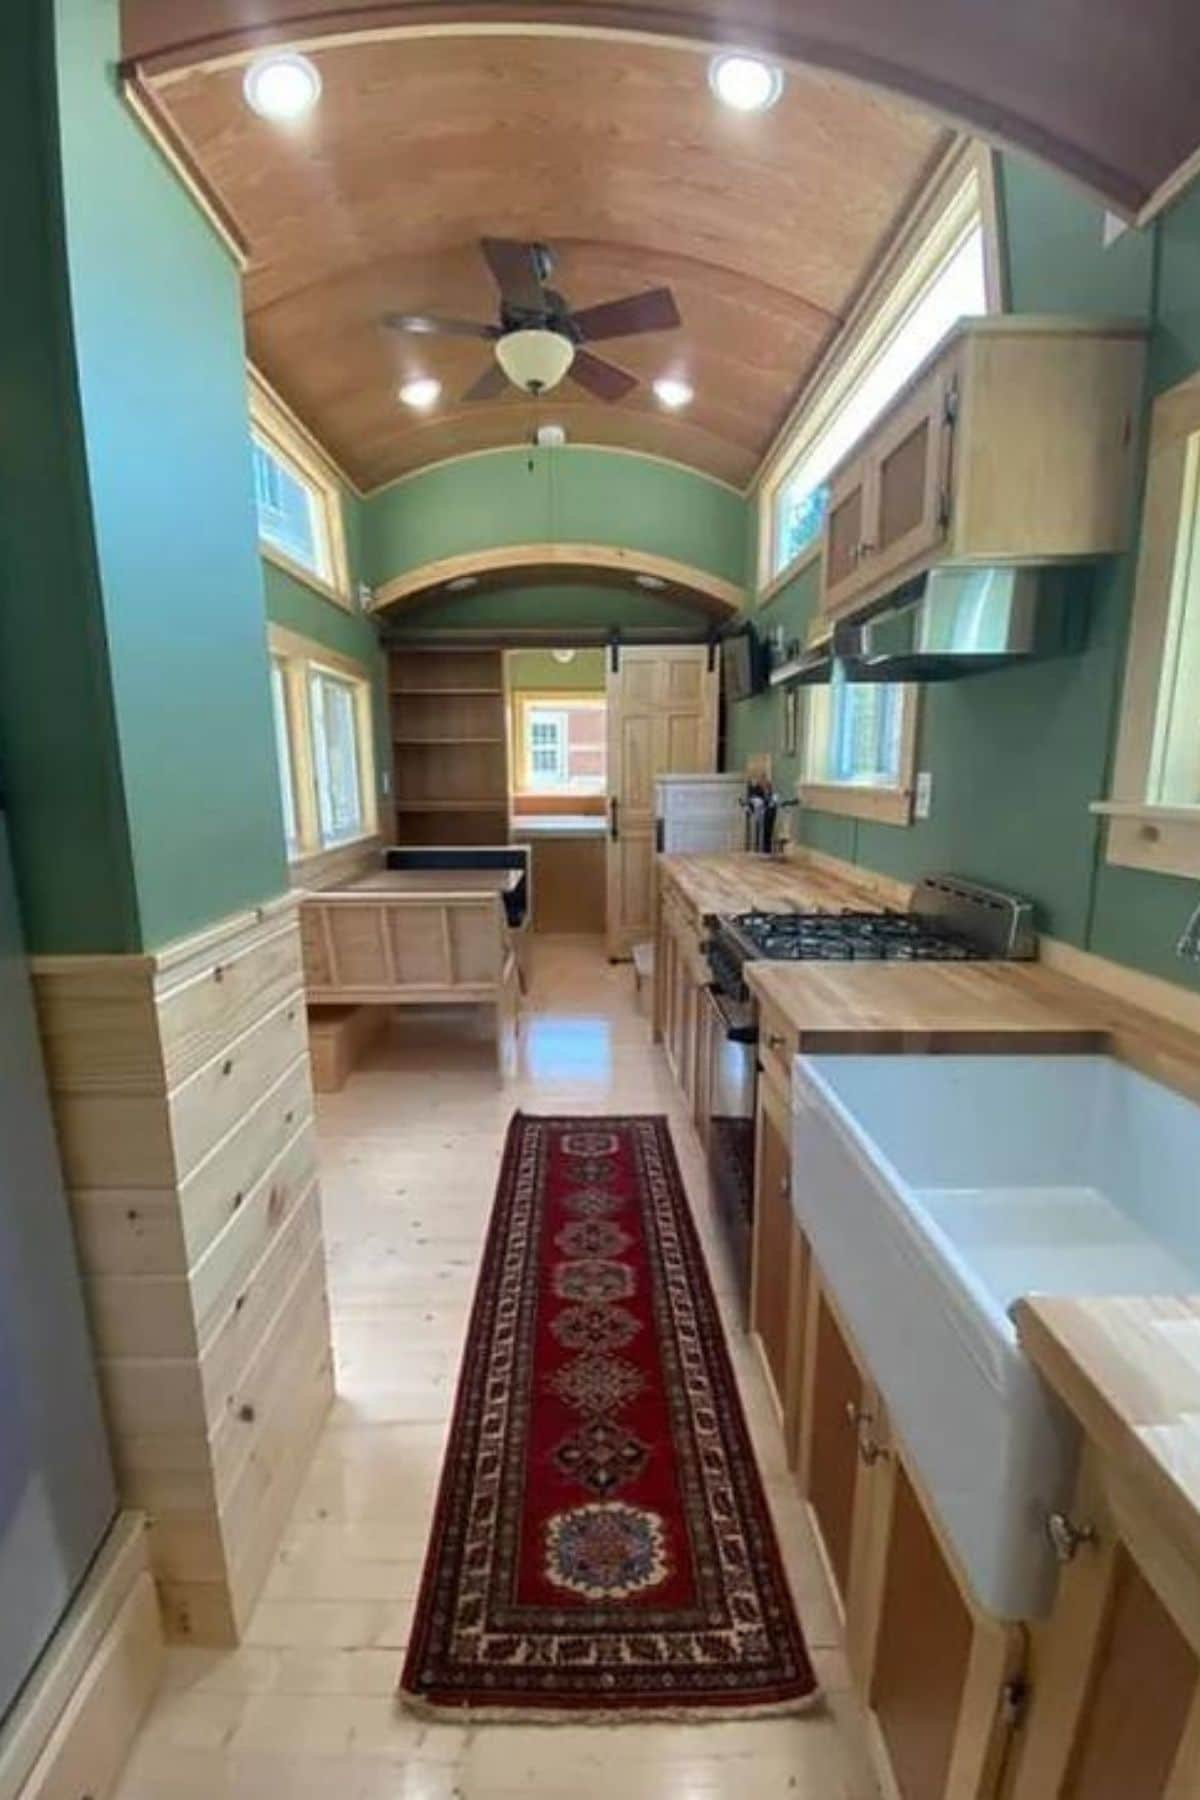 View into tiny house kitchen with white sink and gas stove